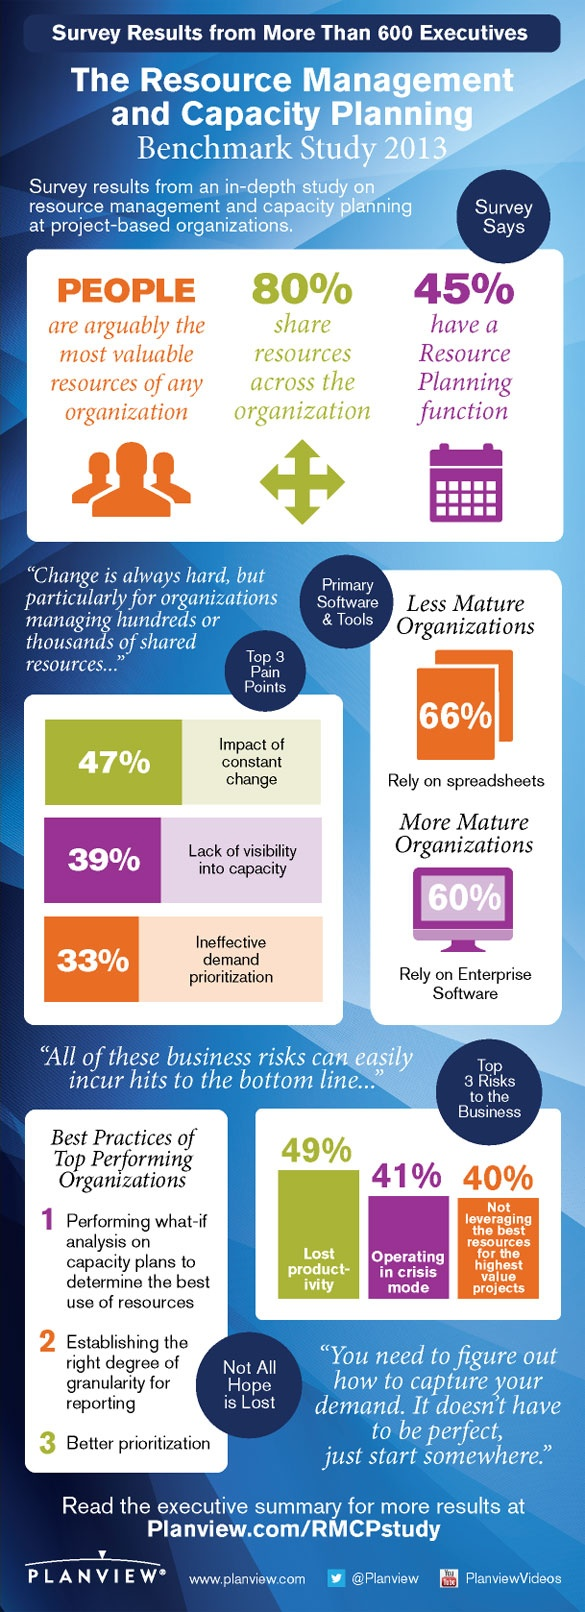 [Infographic] 2013 Resource Management and Capacity Planning Benchmark Study    More than 600 executives and managers in project-based organizations around the globe participated in the survey. Their responses helped determine:  Top resource planning pain points and their causes  The business risks of taking no action  Benefits of addressing resource management and capacity planning  Best practices around people, process and technology of the most mature, best performers